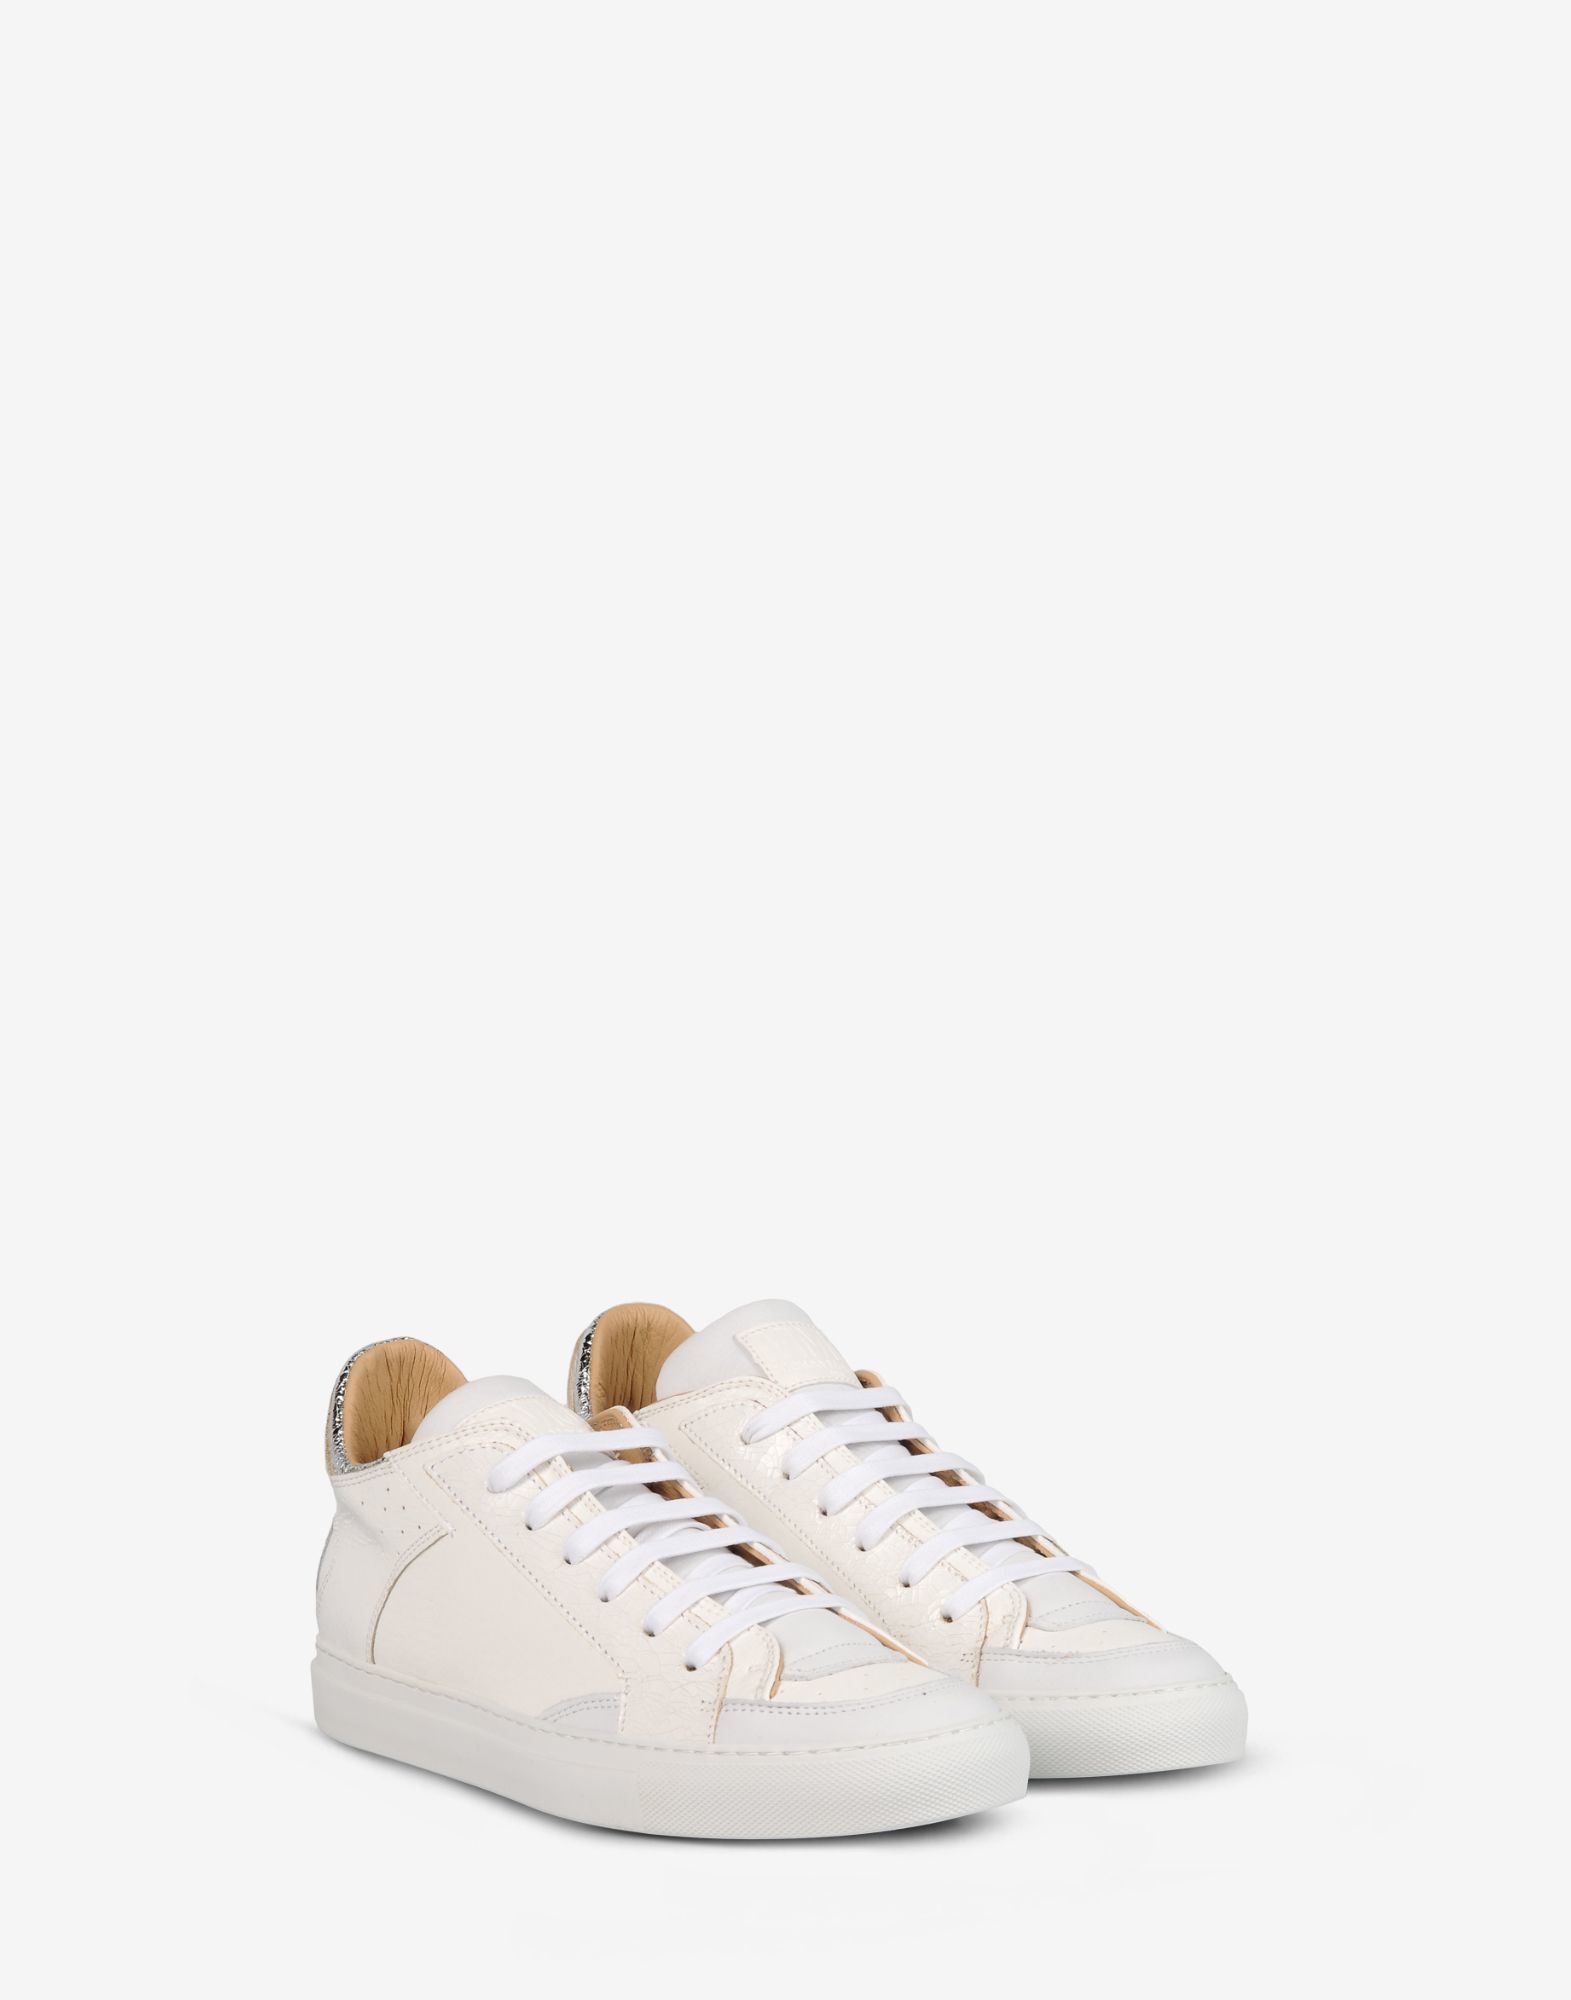 Lyst mm6 by maison martin margiela low top leather for Mm6 maison margiela